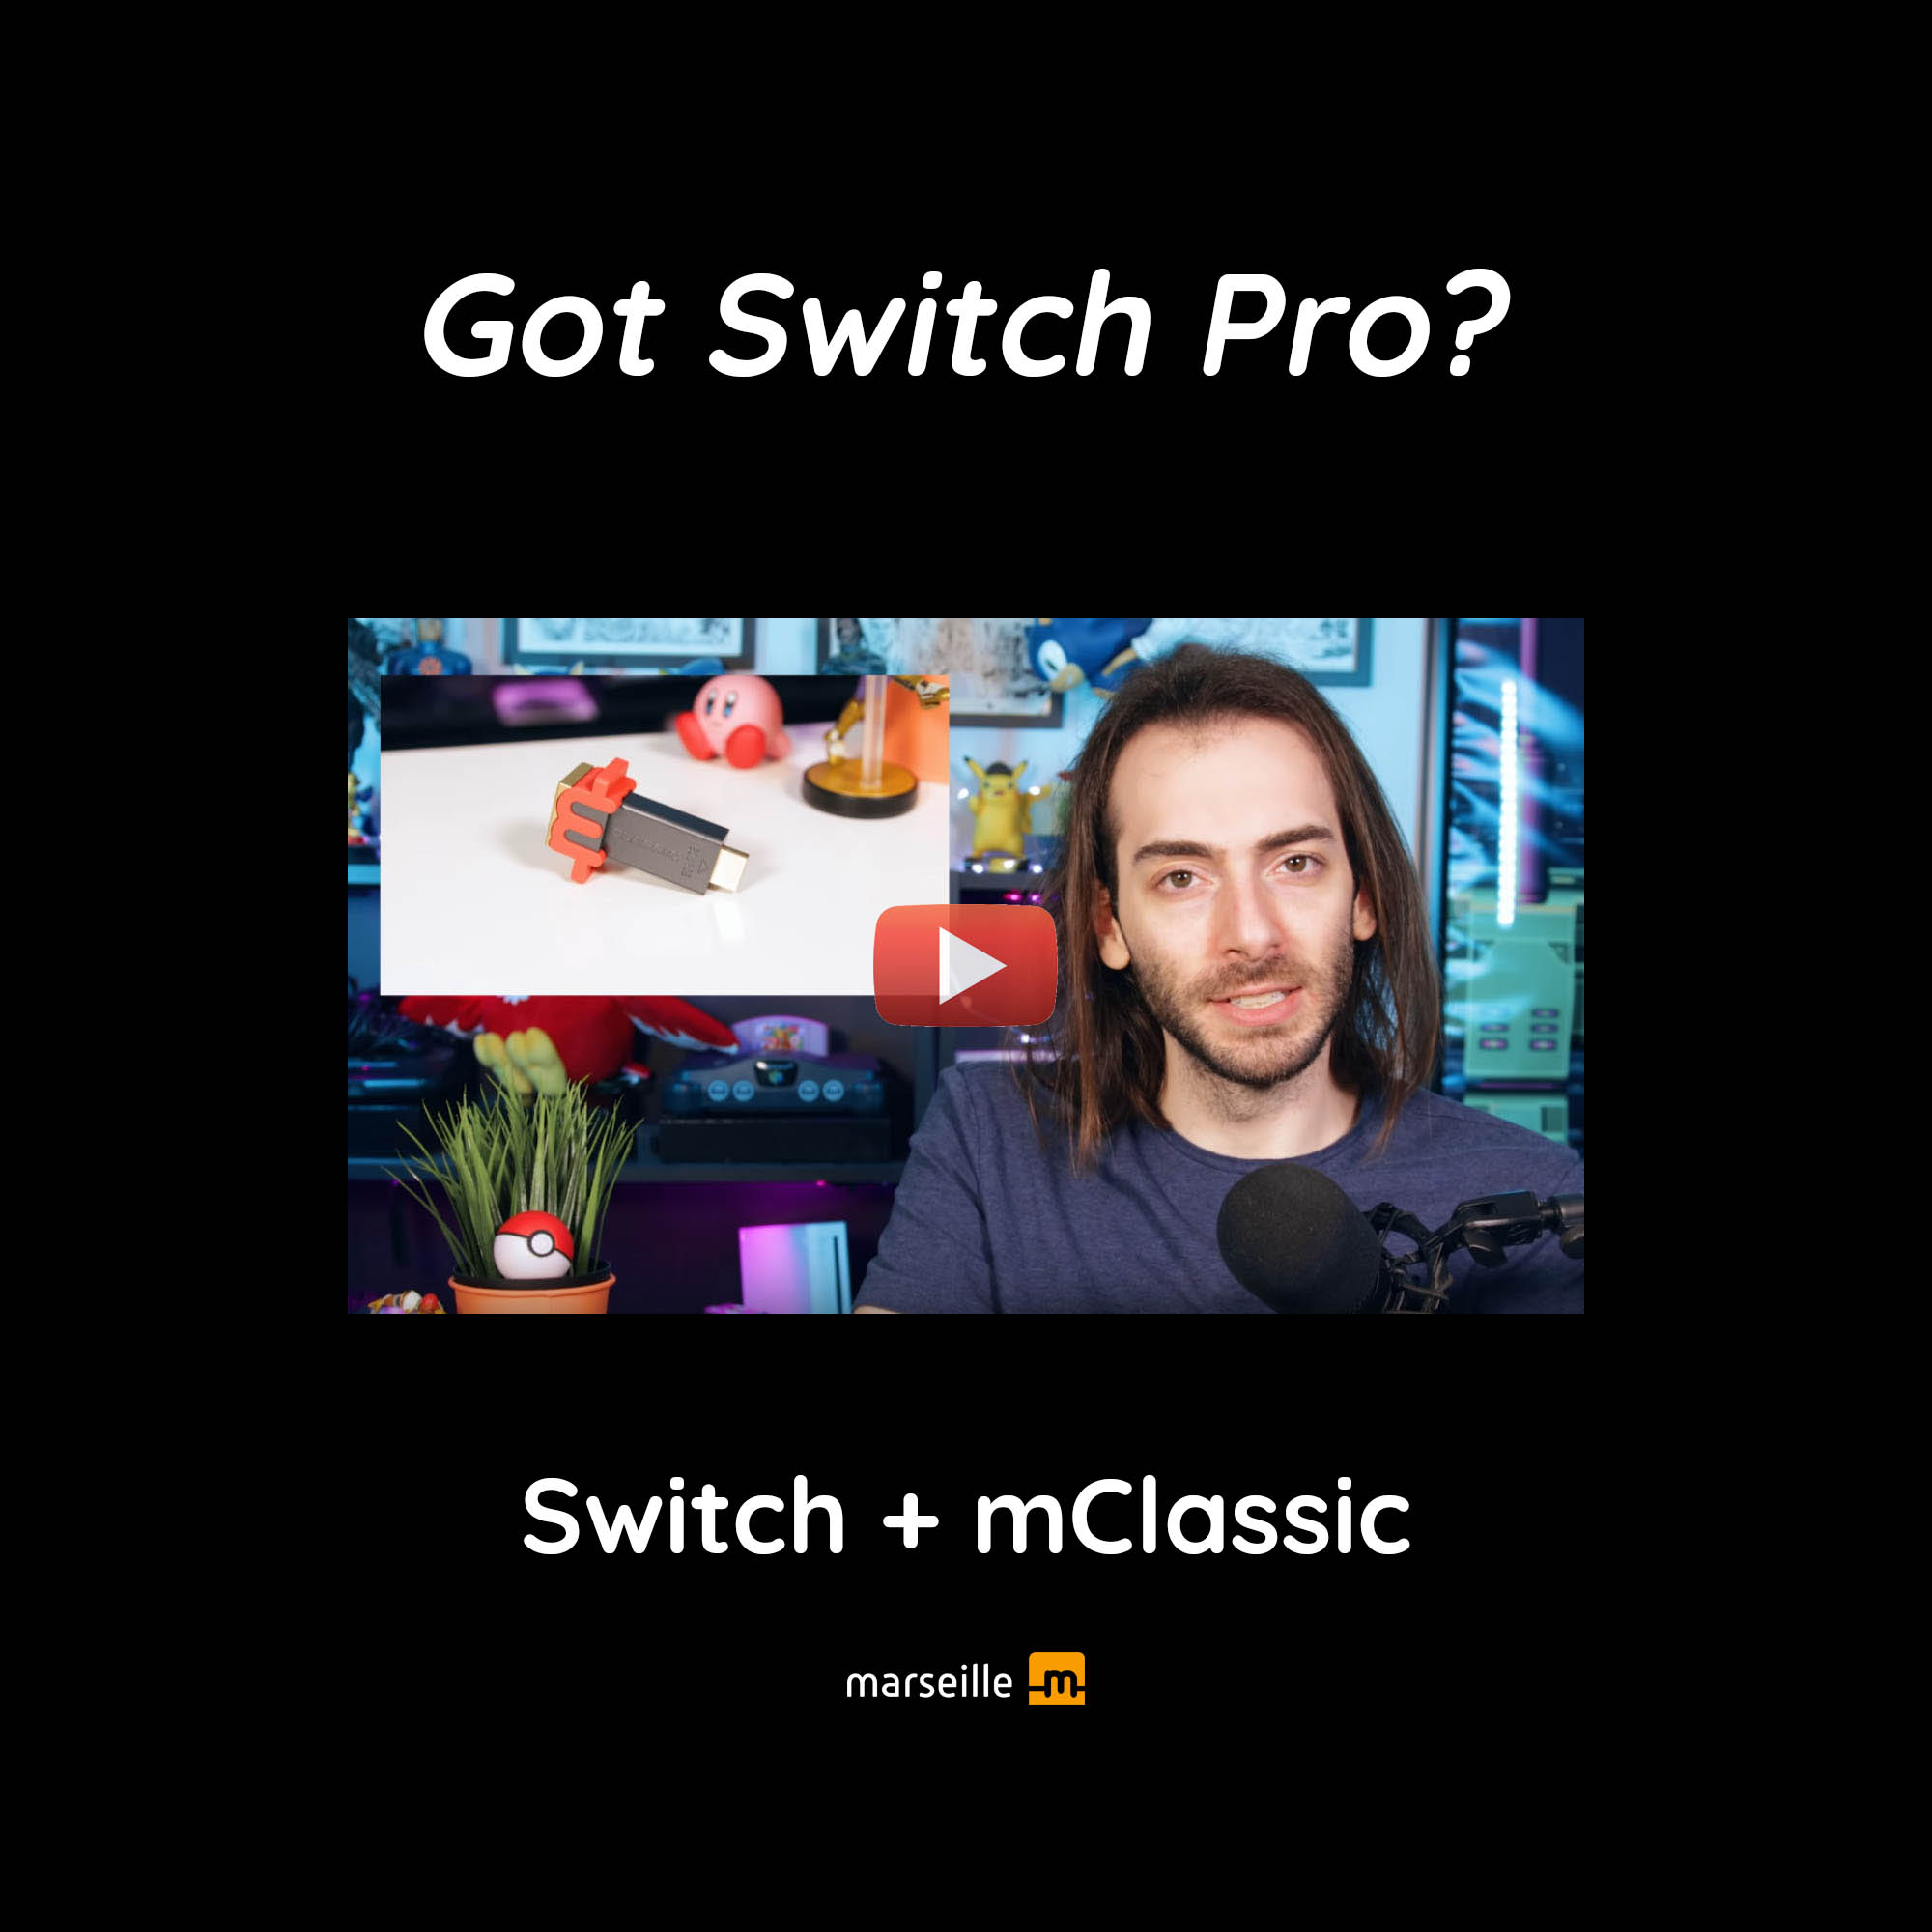 Got Nintendo Switch Pro? Switch plus mClassic